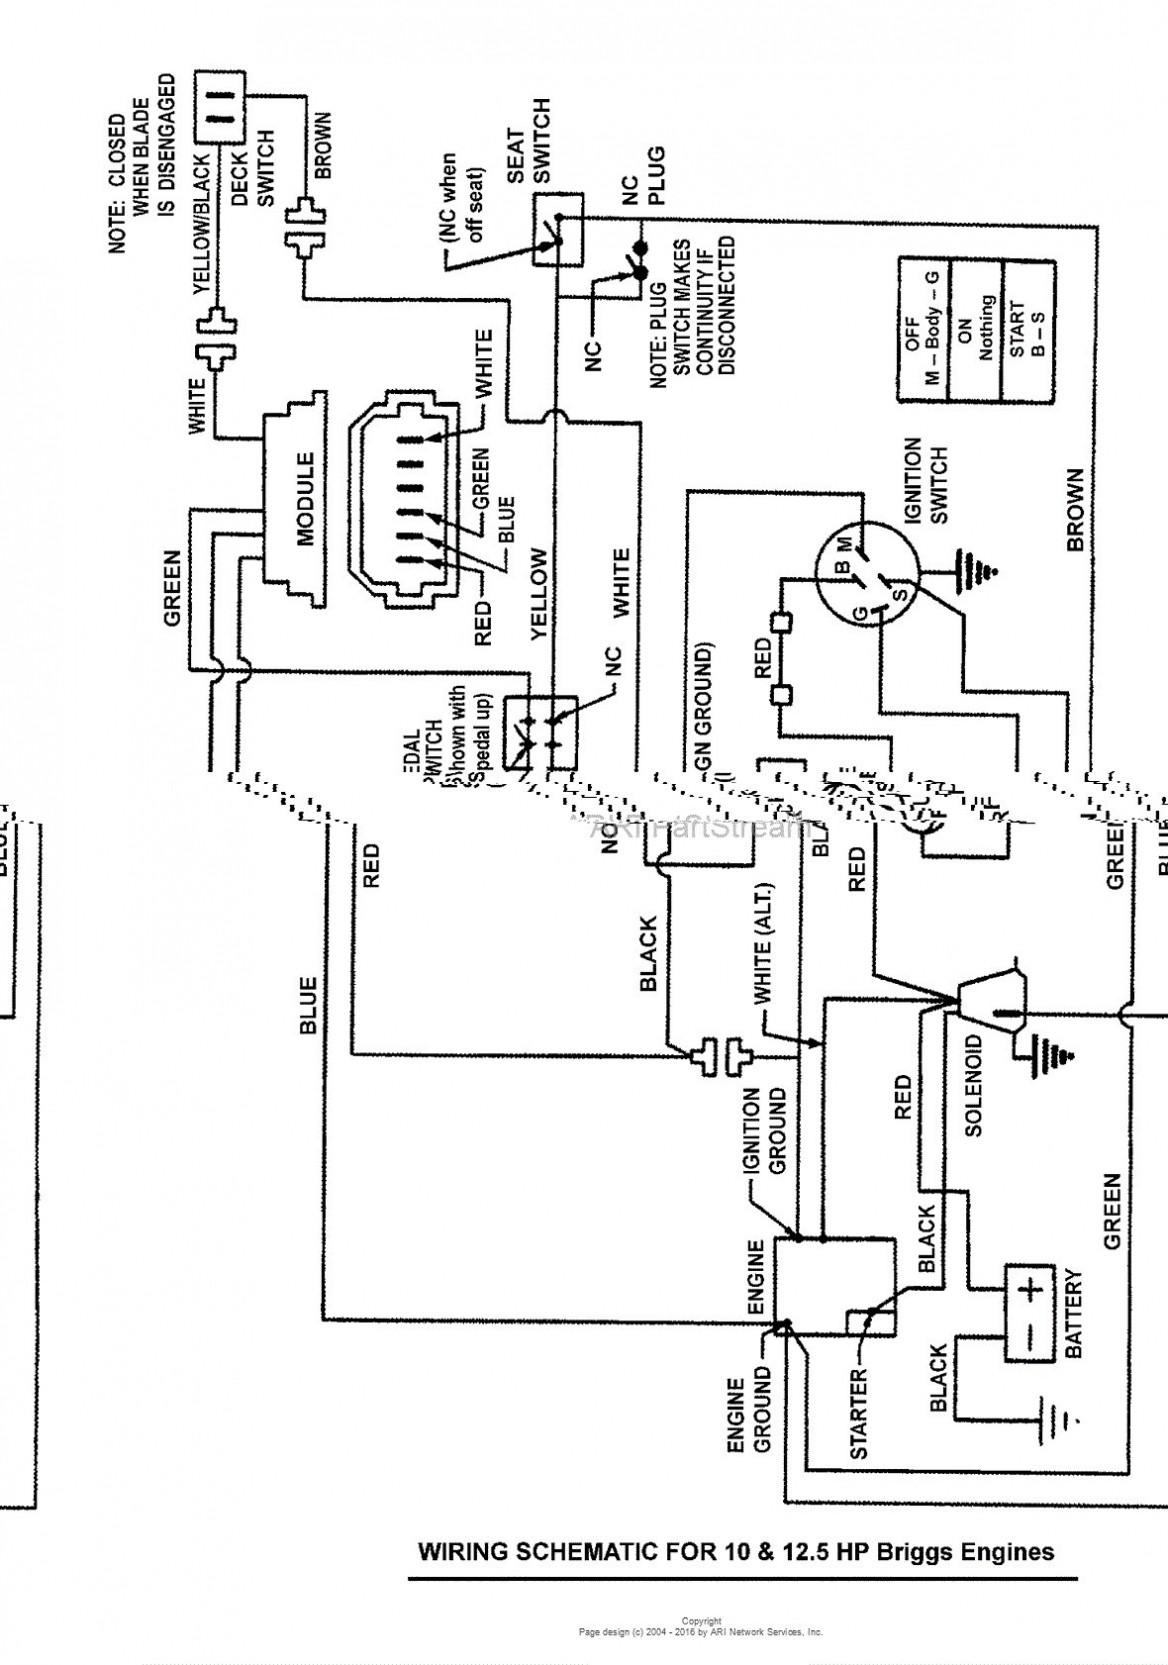 Wiring Manual PDF: 17 Hp Briggs Stratton Wiring Diagram Hecho